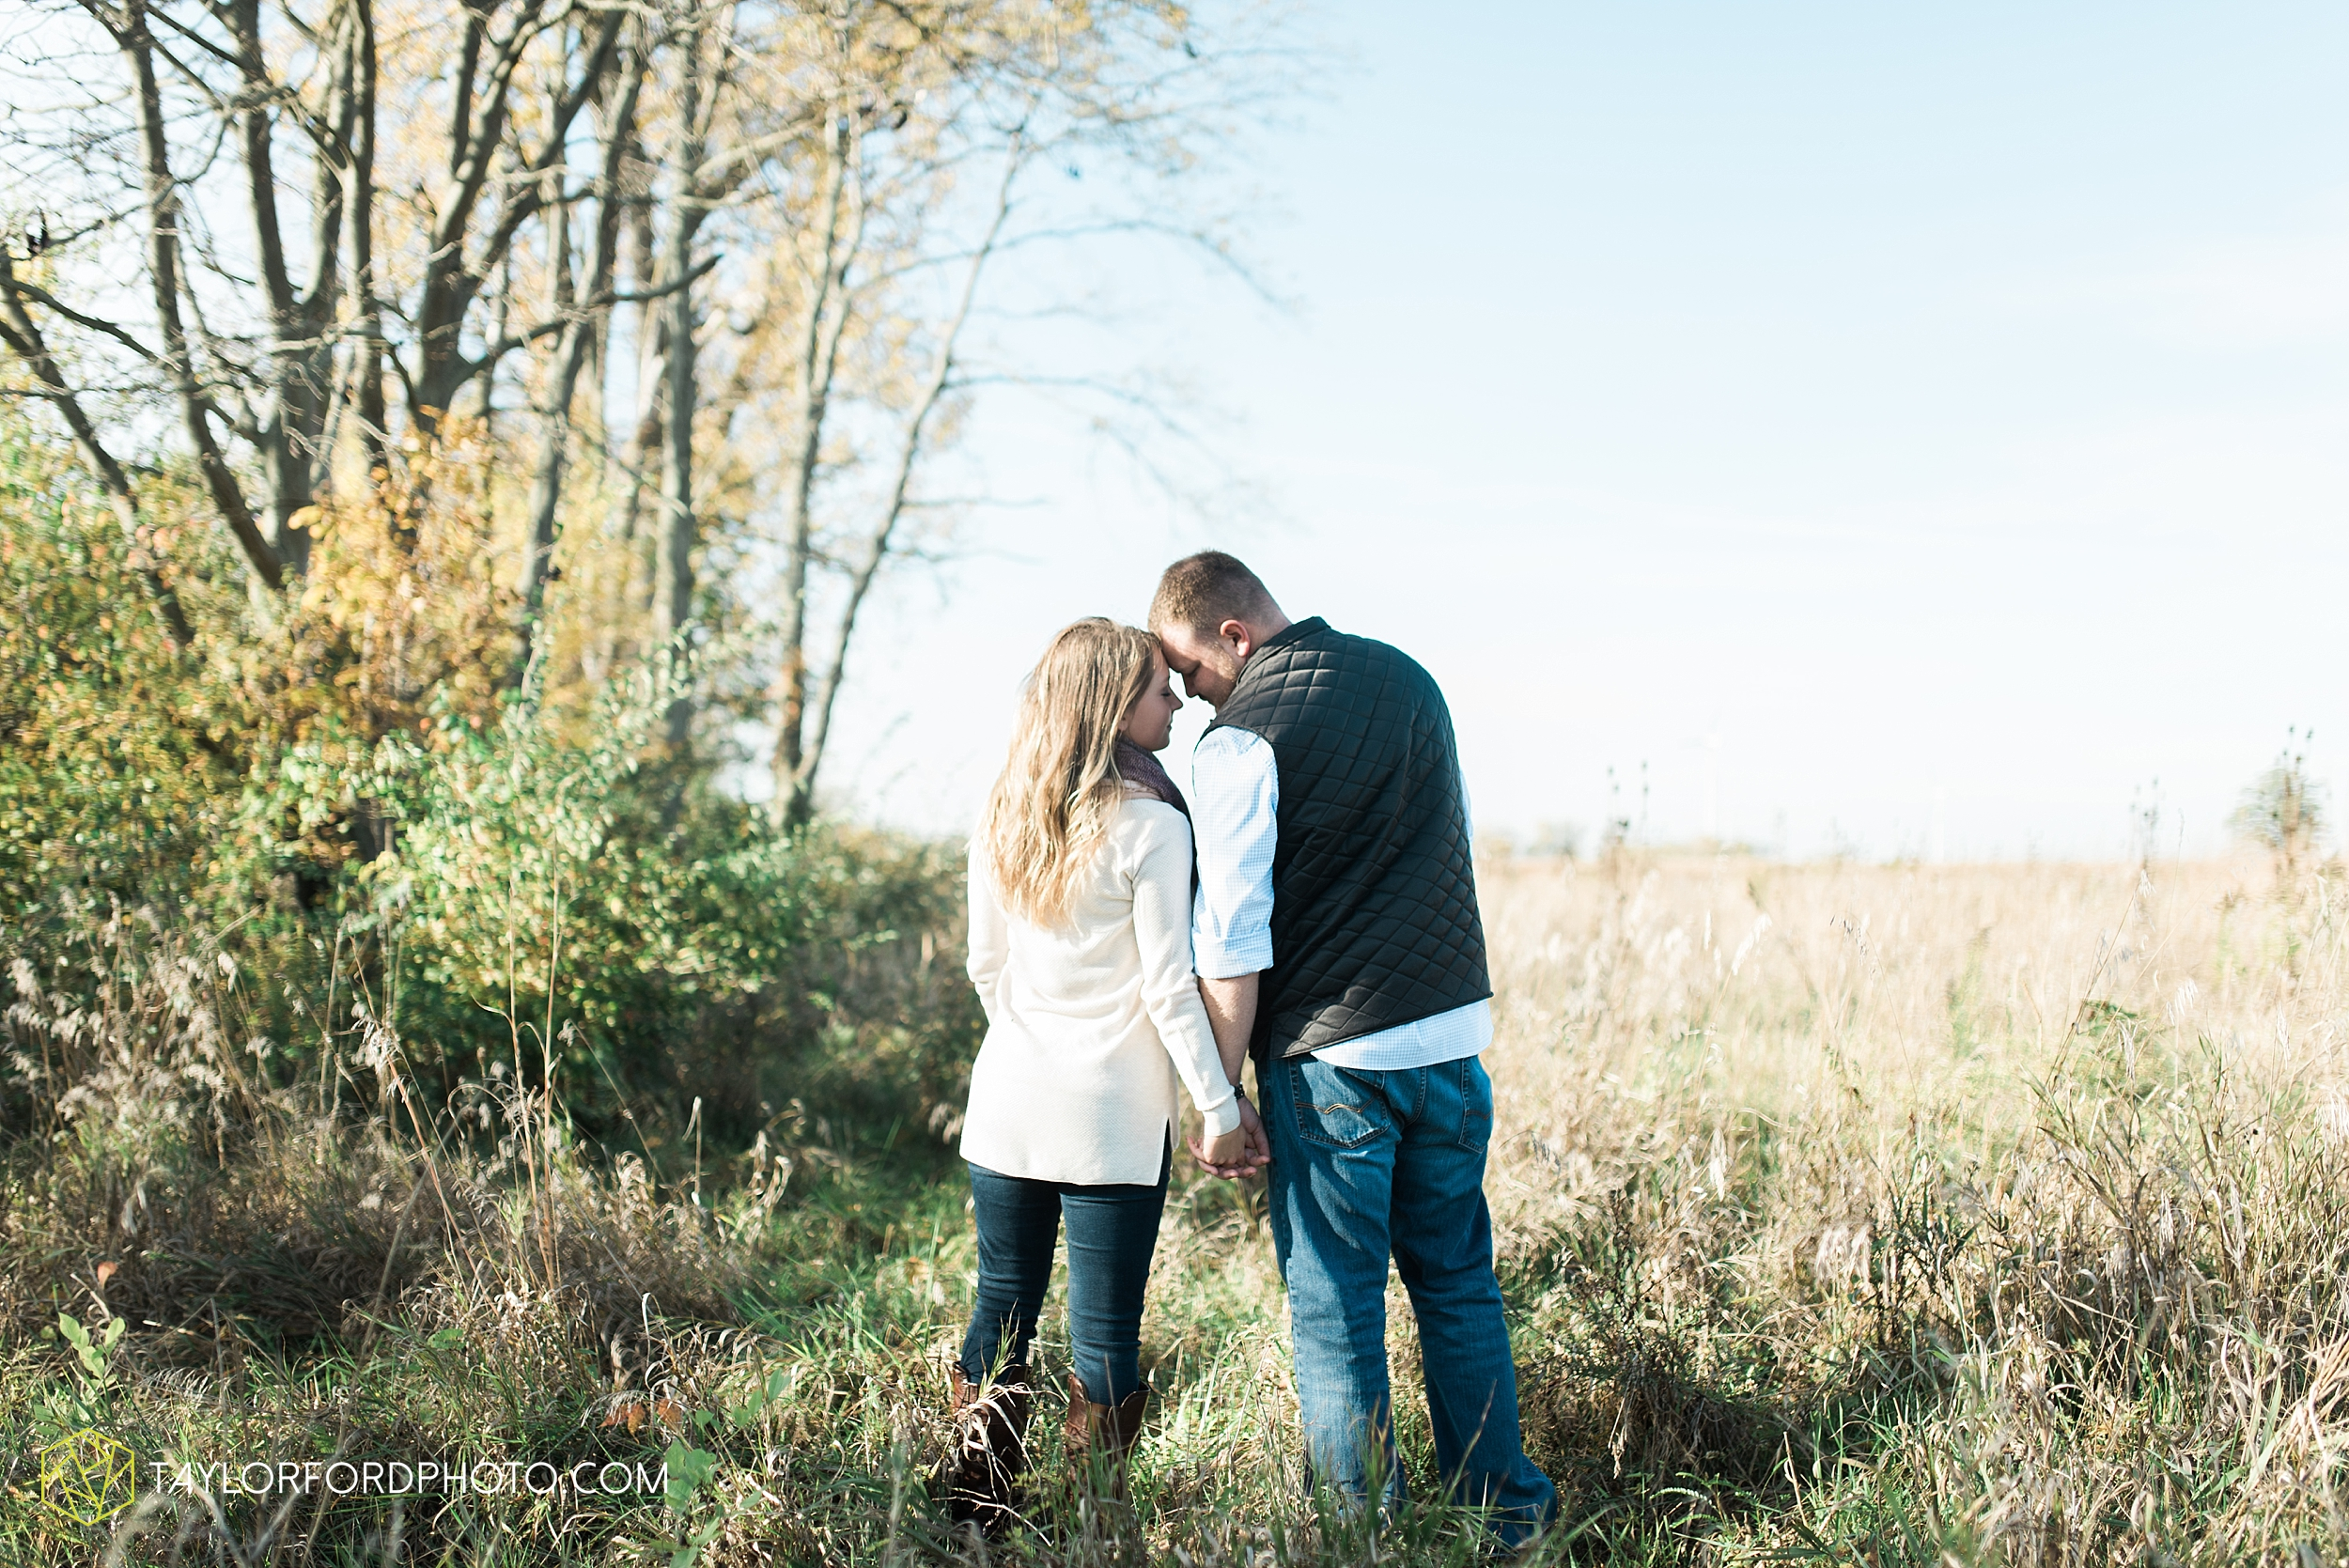 van-wert-ohio-engagement-wedding-photographer-Taylor-Ford-Photography-fall-farm-nature_4071.jpg